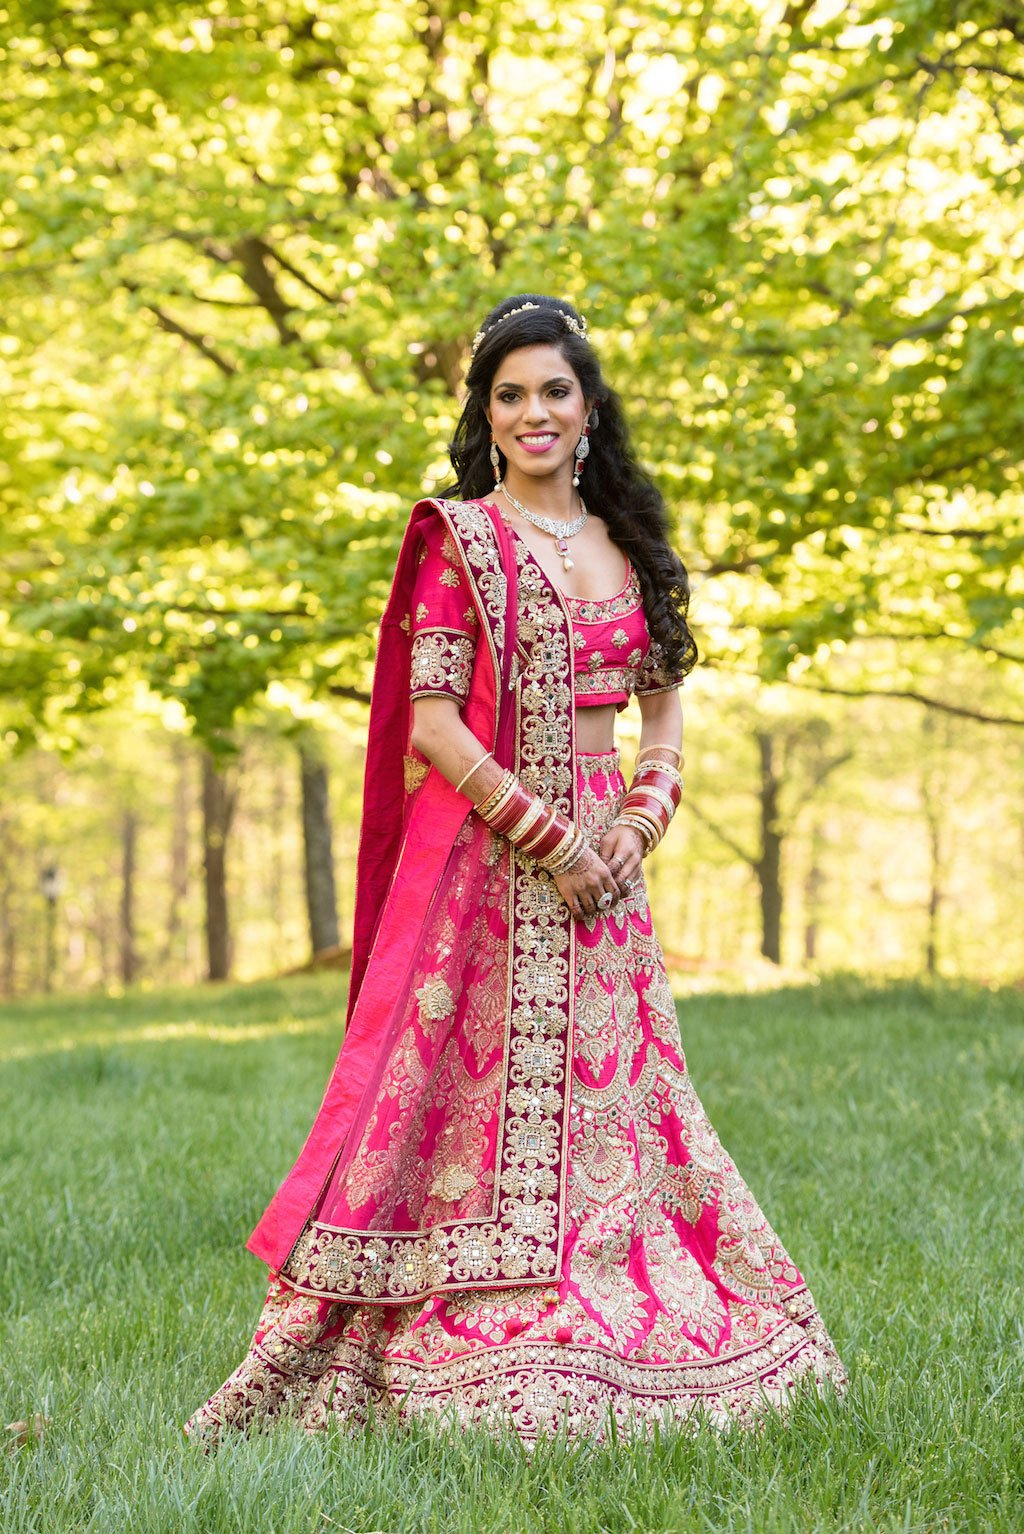 6-30-16-social-and-style-indian-wedding-13